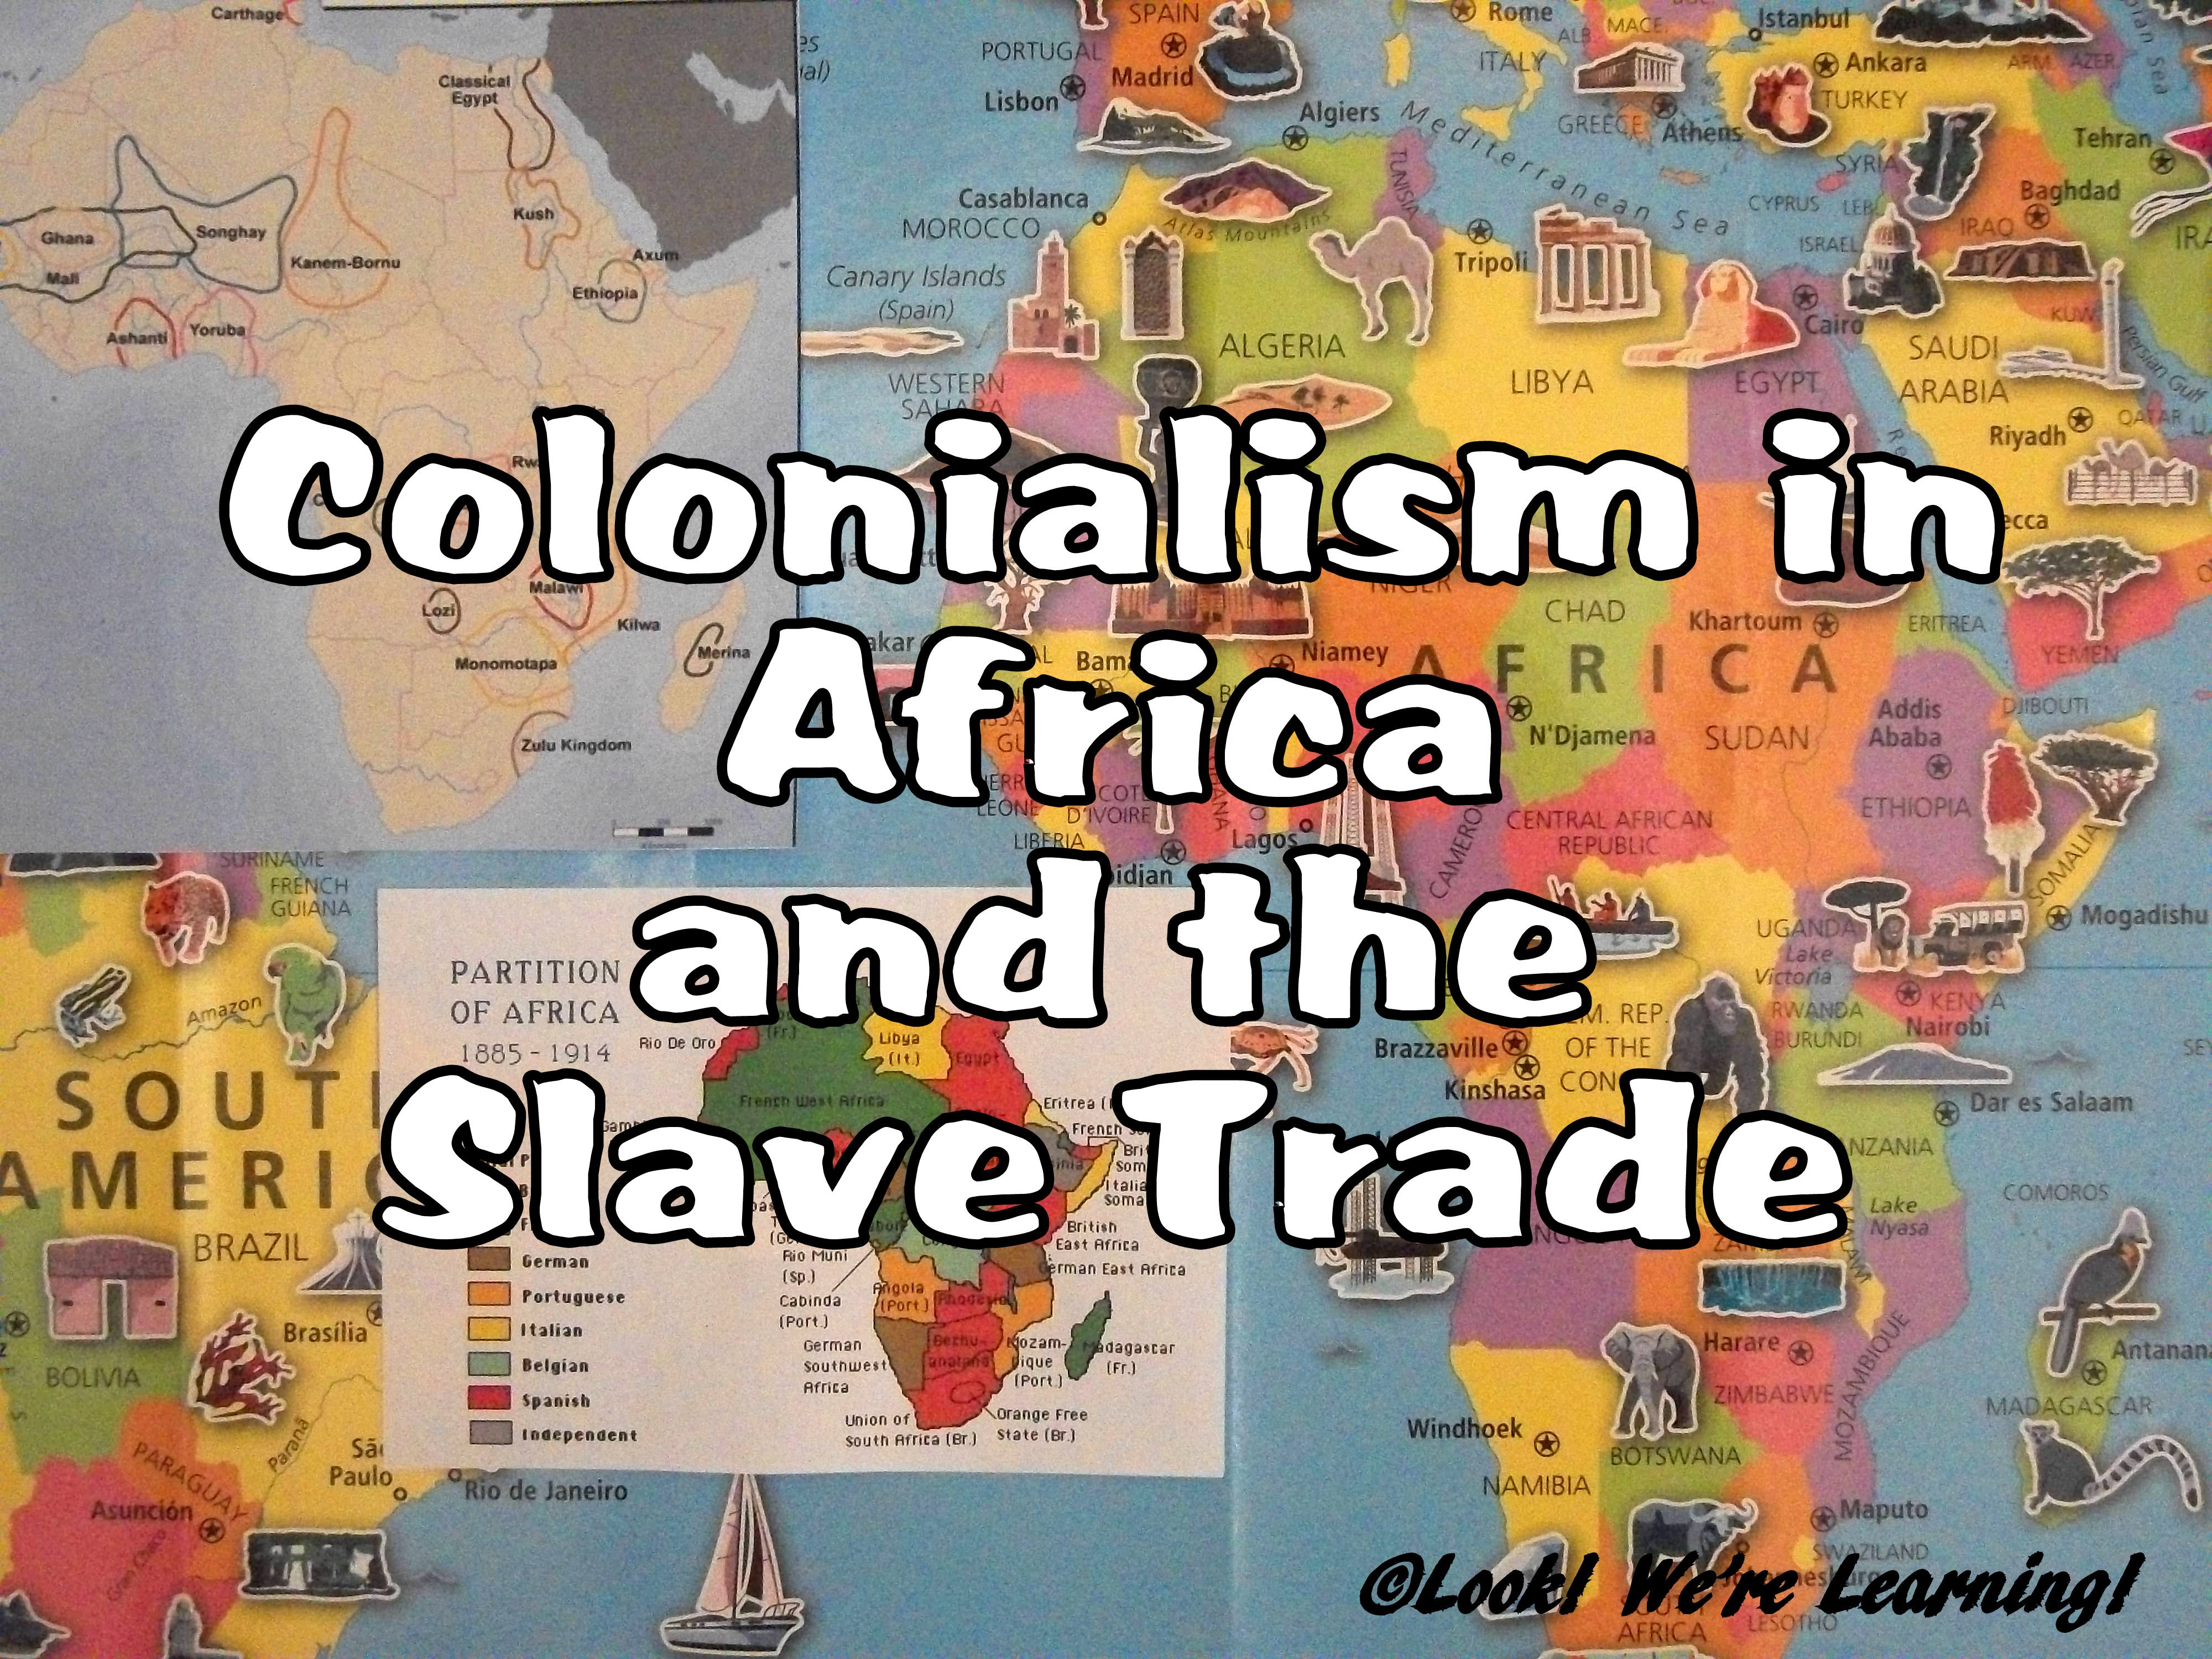 an introduction to the history of slave trade of africa Britain, slavery and the trade in enslaved africans, an article on the history of slavery by marika sherwood.